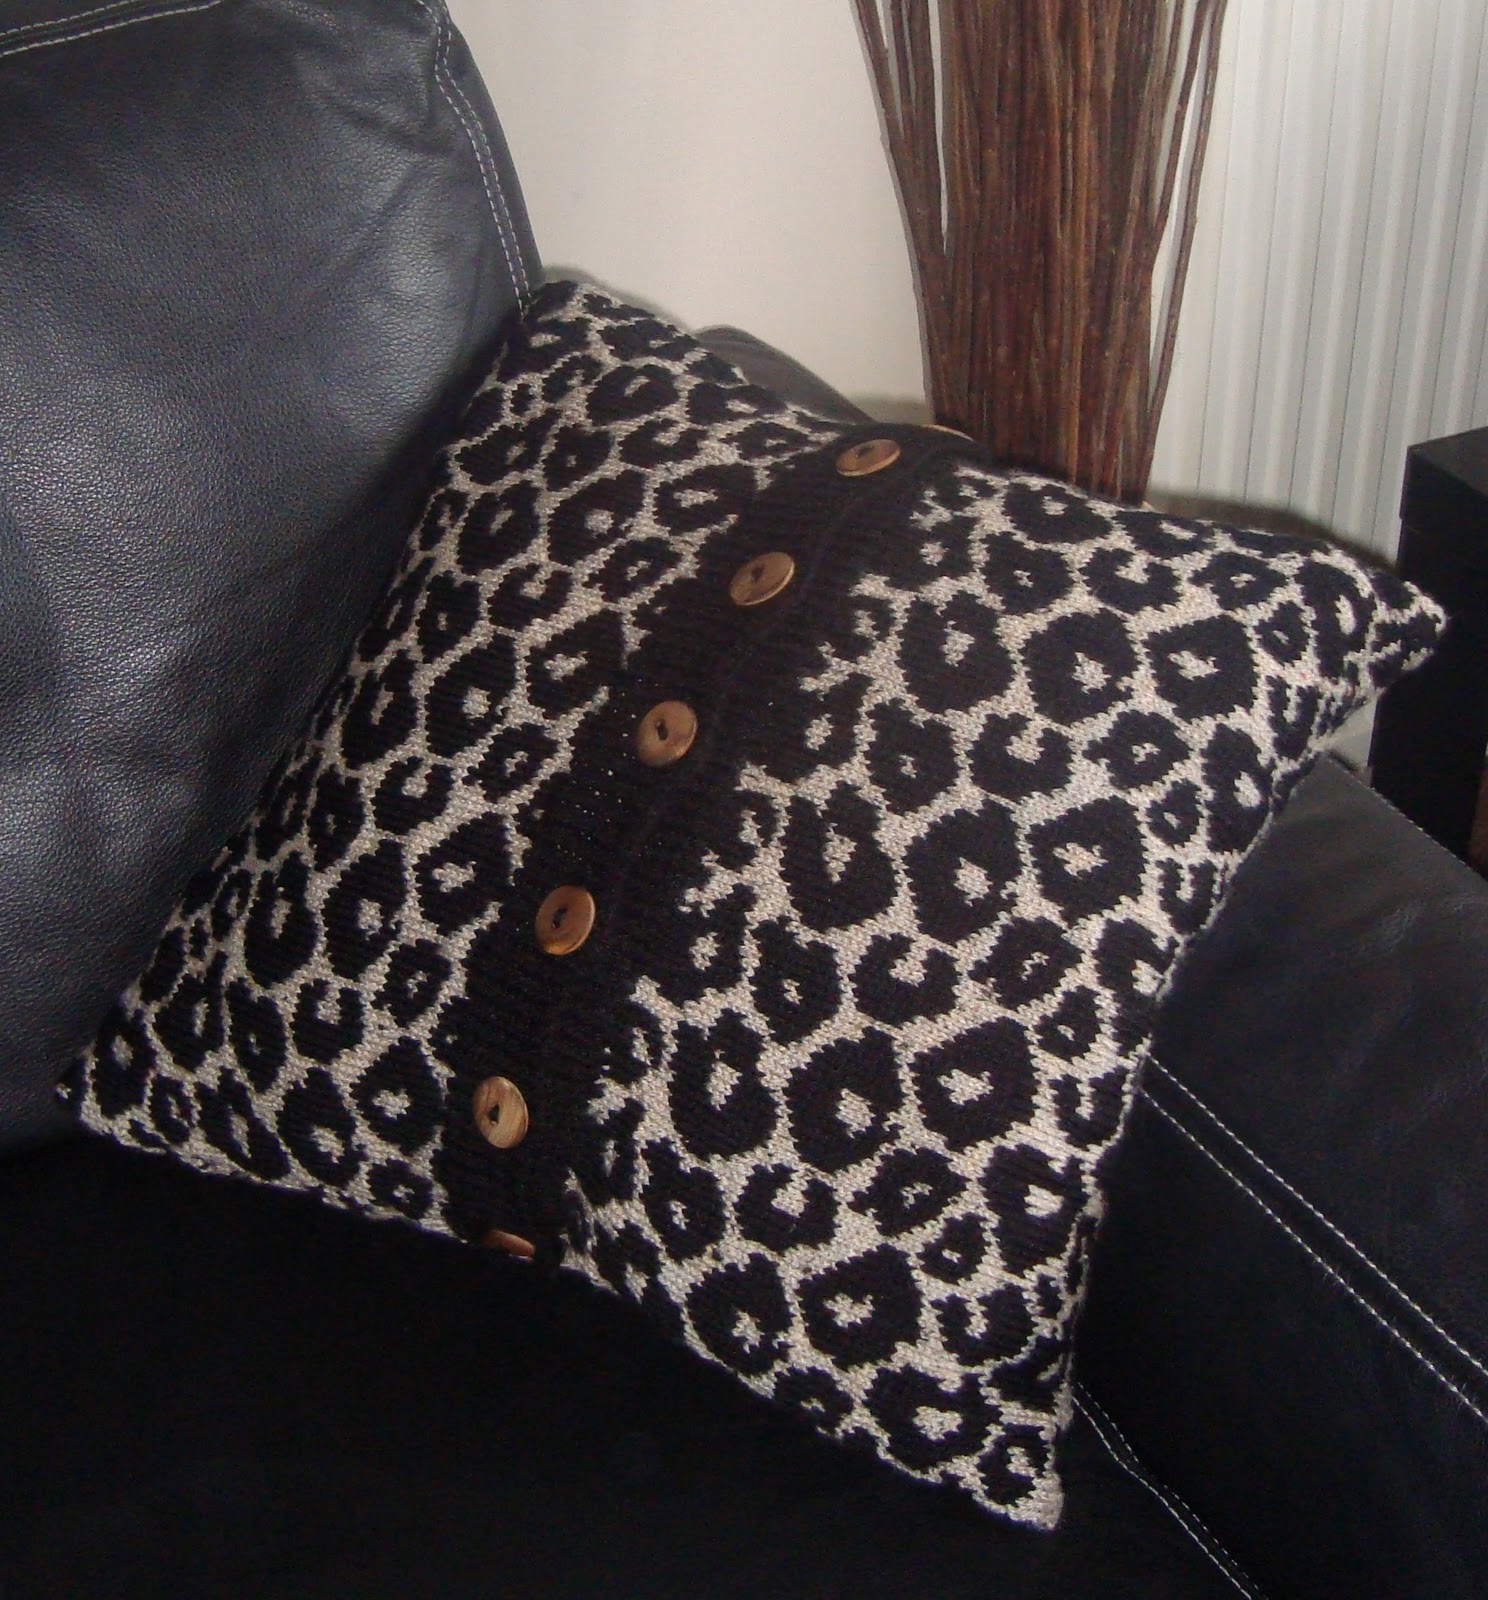 Leopard Knitting Pattern : Leopard Cushion Cover Knitting Pattern